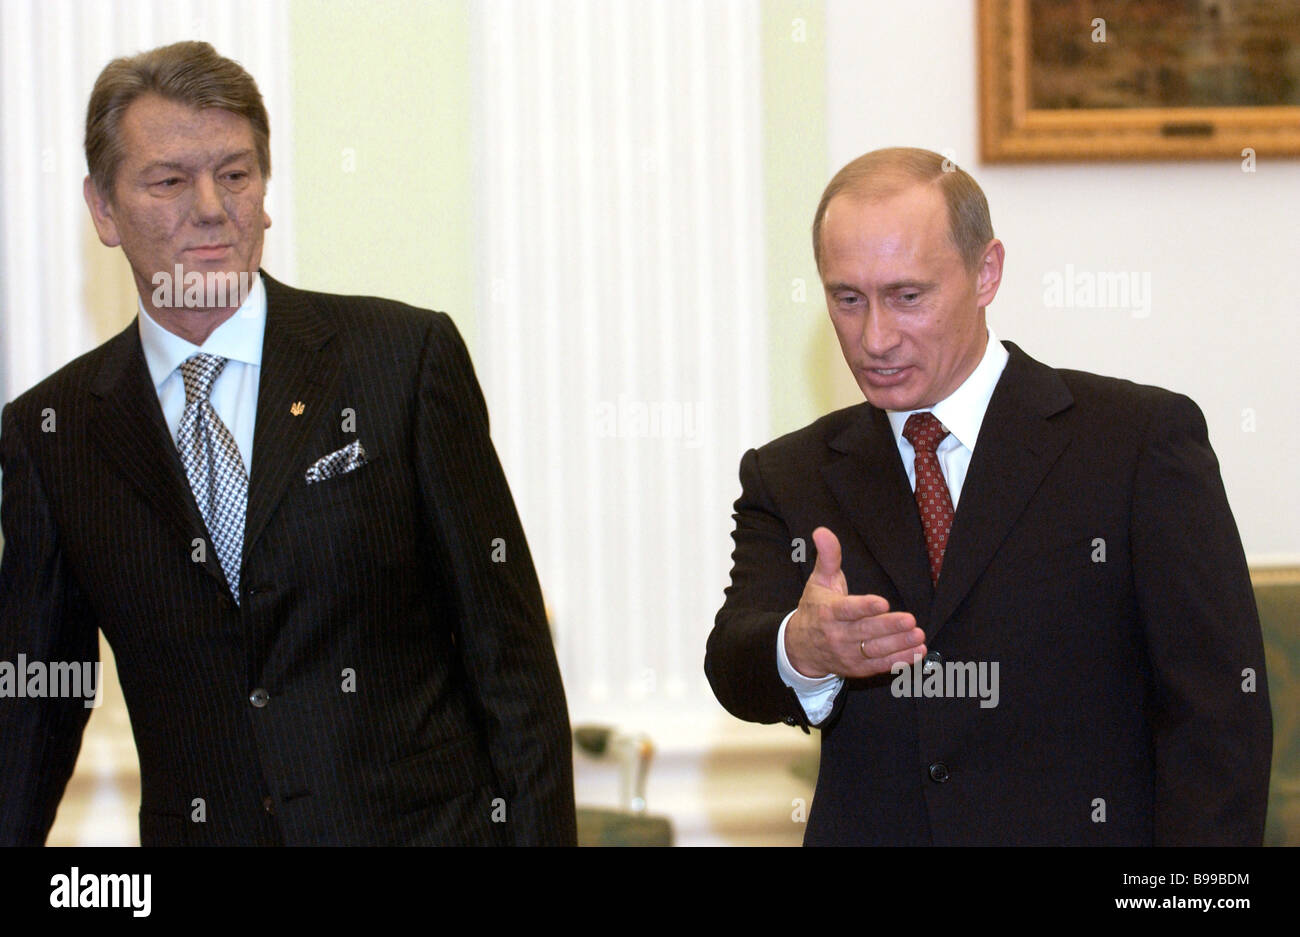 Ukranian President Viktor Yushchenko and Russian President Vladimir Putin left to right meeting in the Kremlin - Stock Image